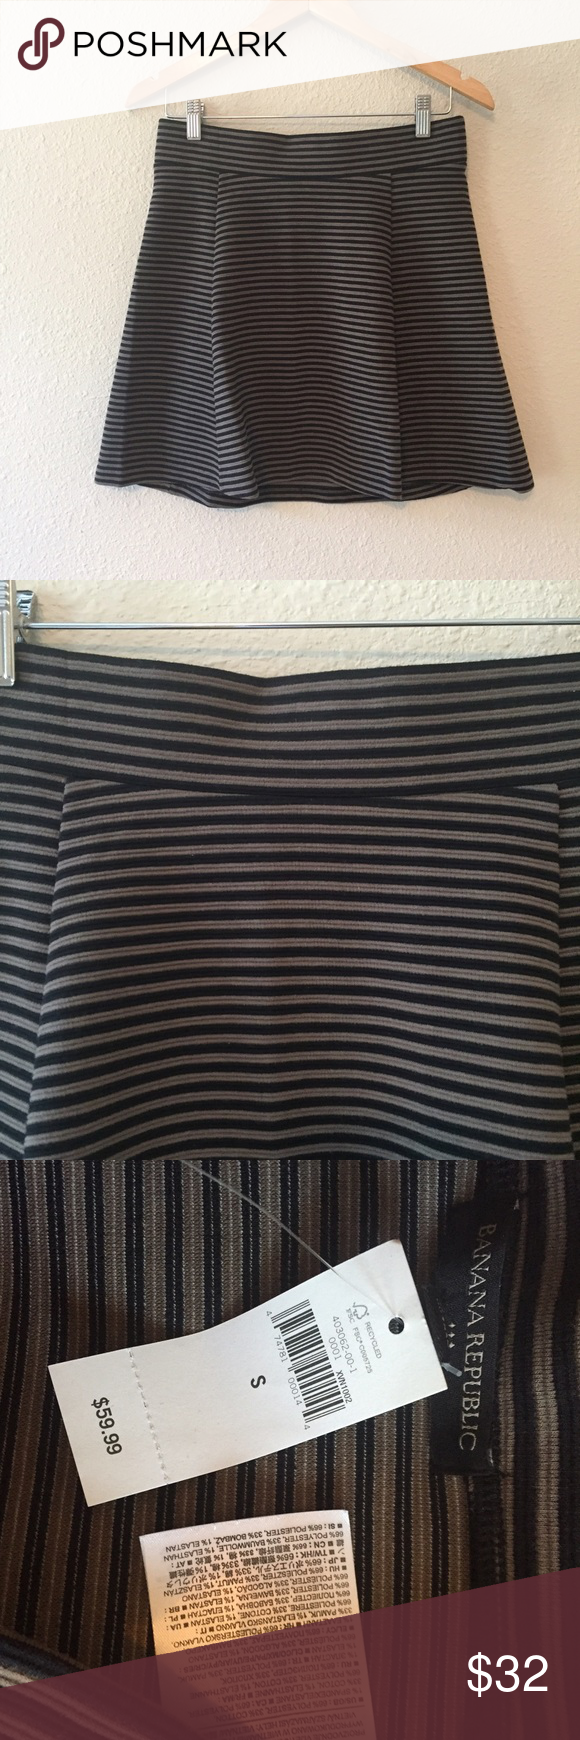 {BR} Striped Fit Flare Skirt Brand new with tags. Adorable and perfect for fall with a sweater and flats. A bit of a stretch for extra comfort. Pull this baby on for an easy outfit on a running-late kinda morning! No trades please. Banana Republic Skirts Mini